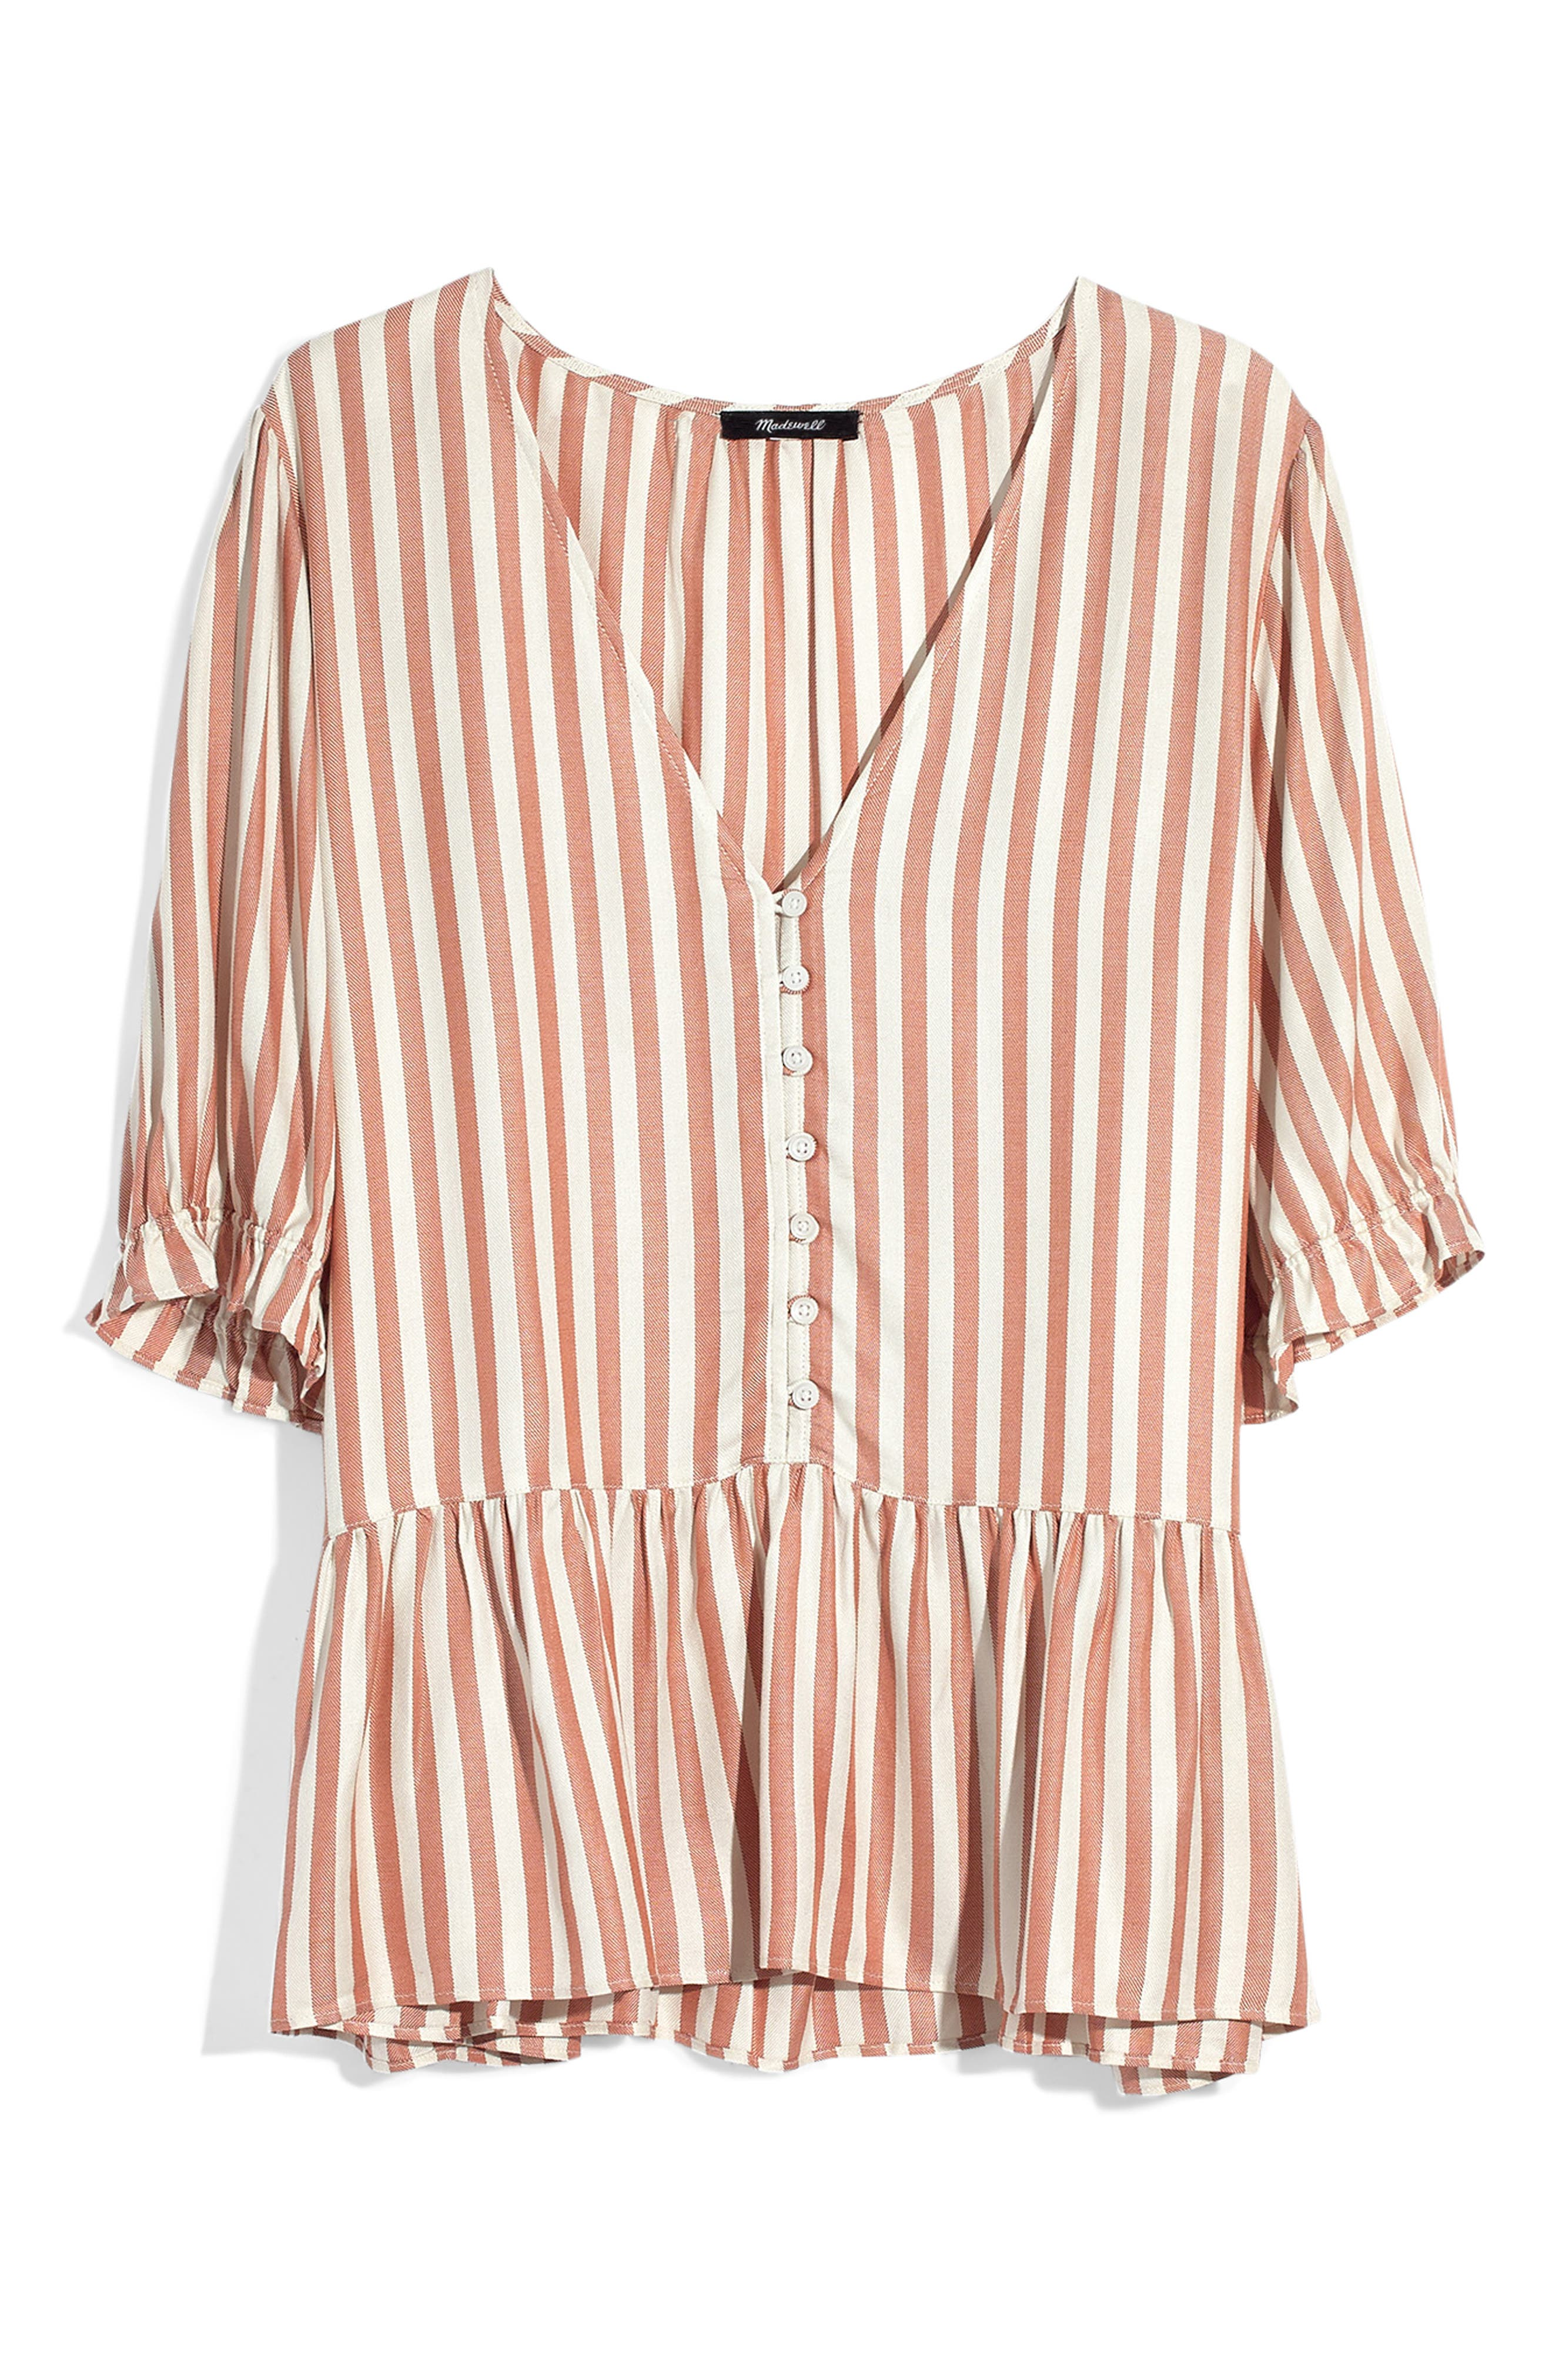 MADEWELL,                             Courtyard Ruffle Hem Top,                             Alternate thumbnail 5, color,                             STRIPE